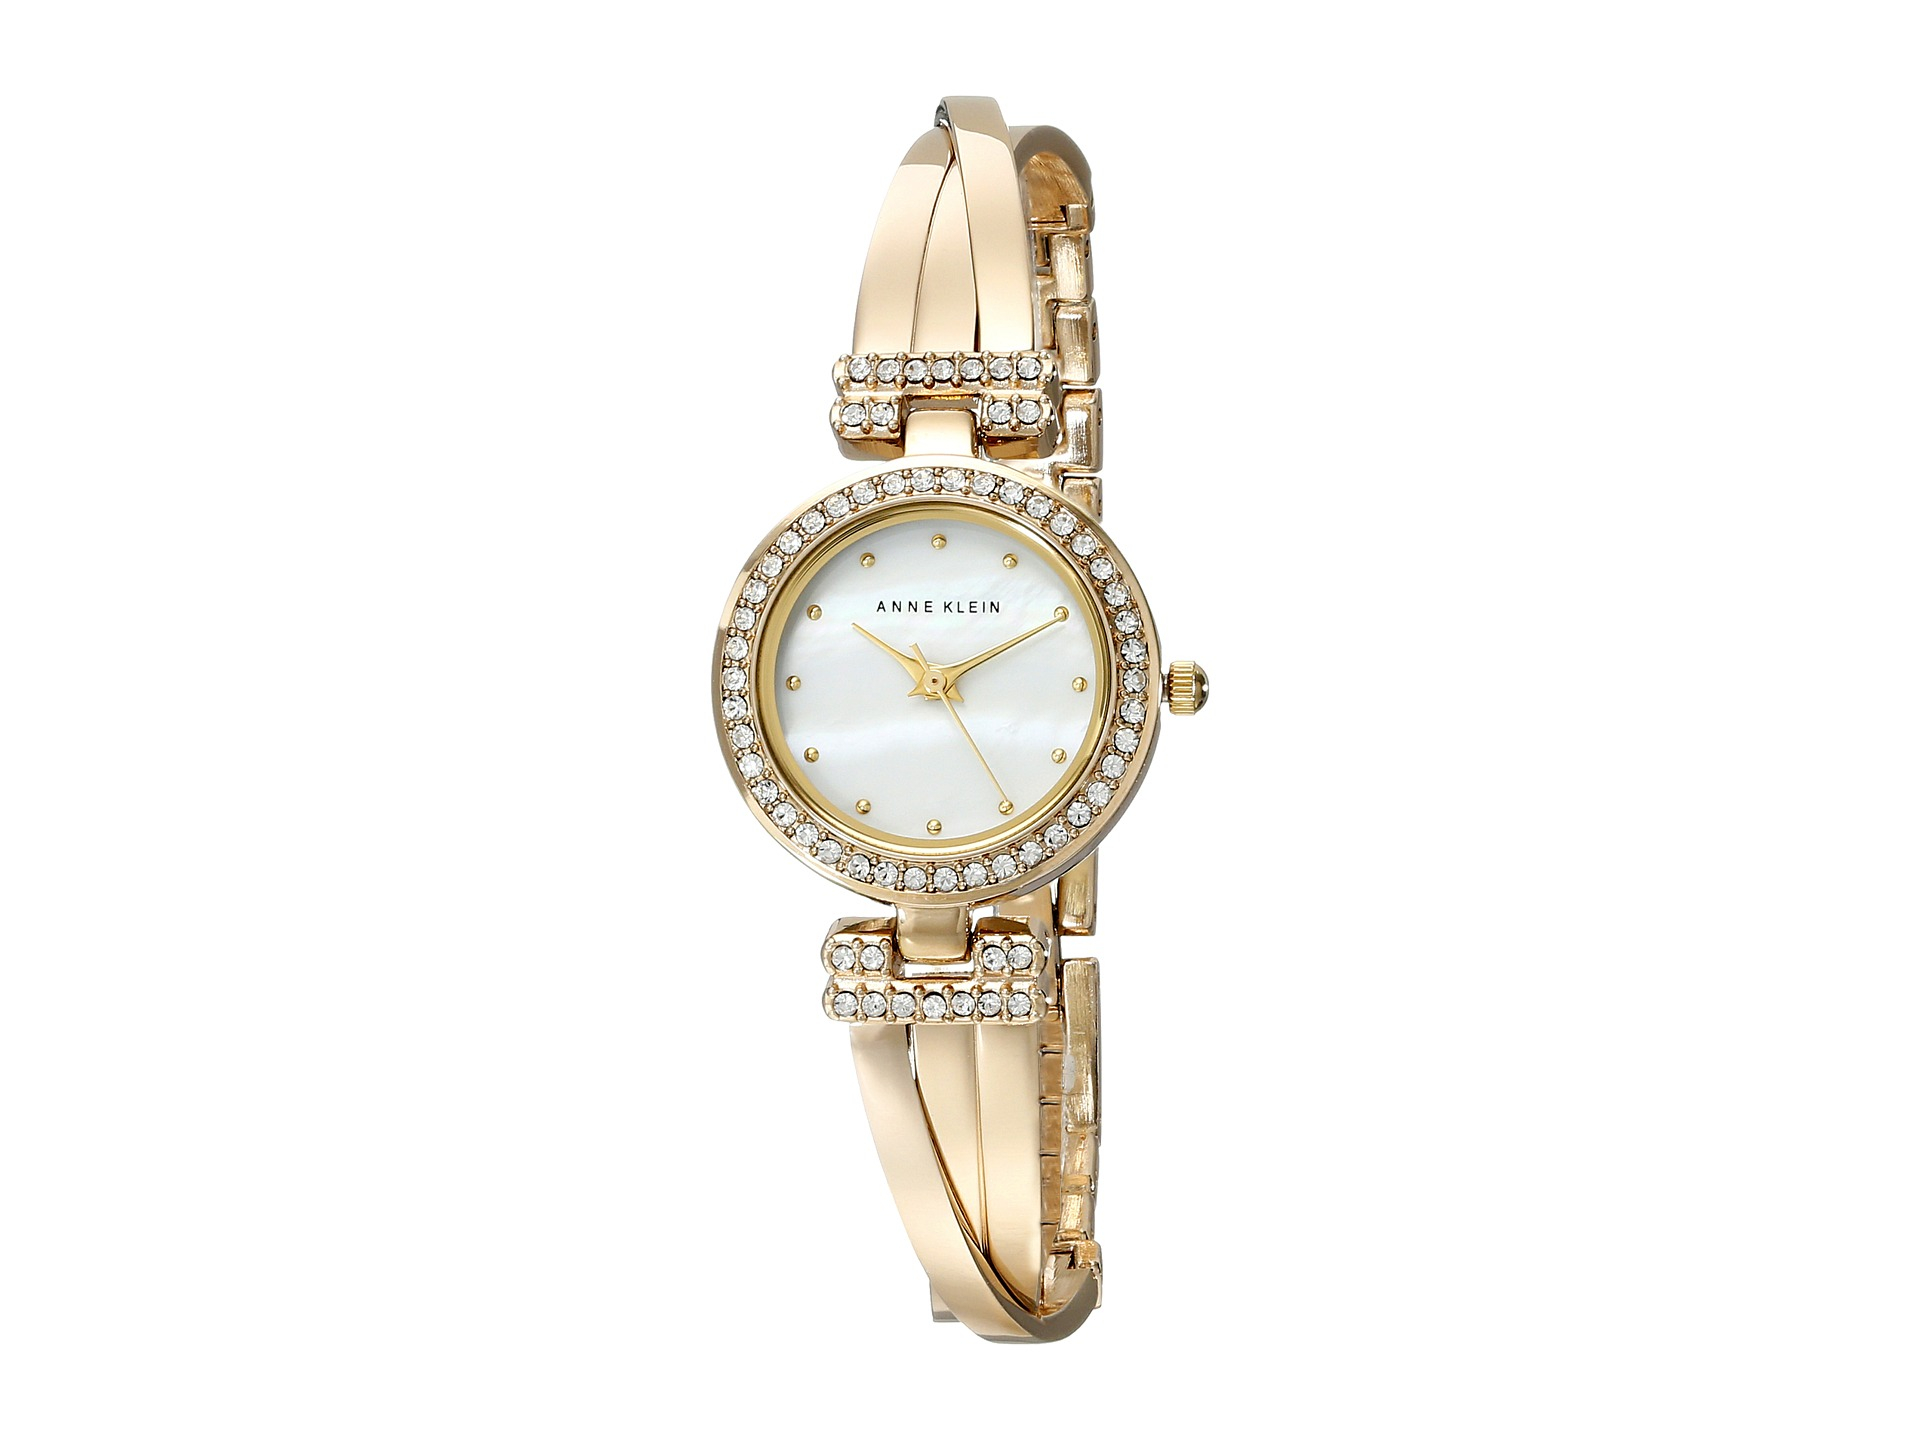 Anne klein bangle watch and bracelet boxed set in gold gold tone lyst for Anne klein gold watch